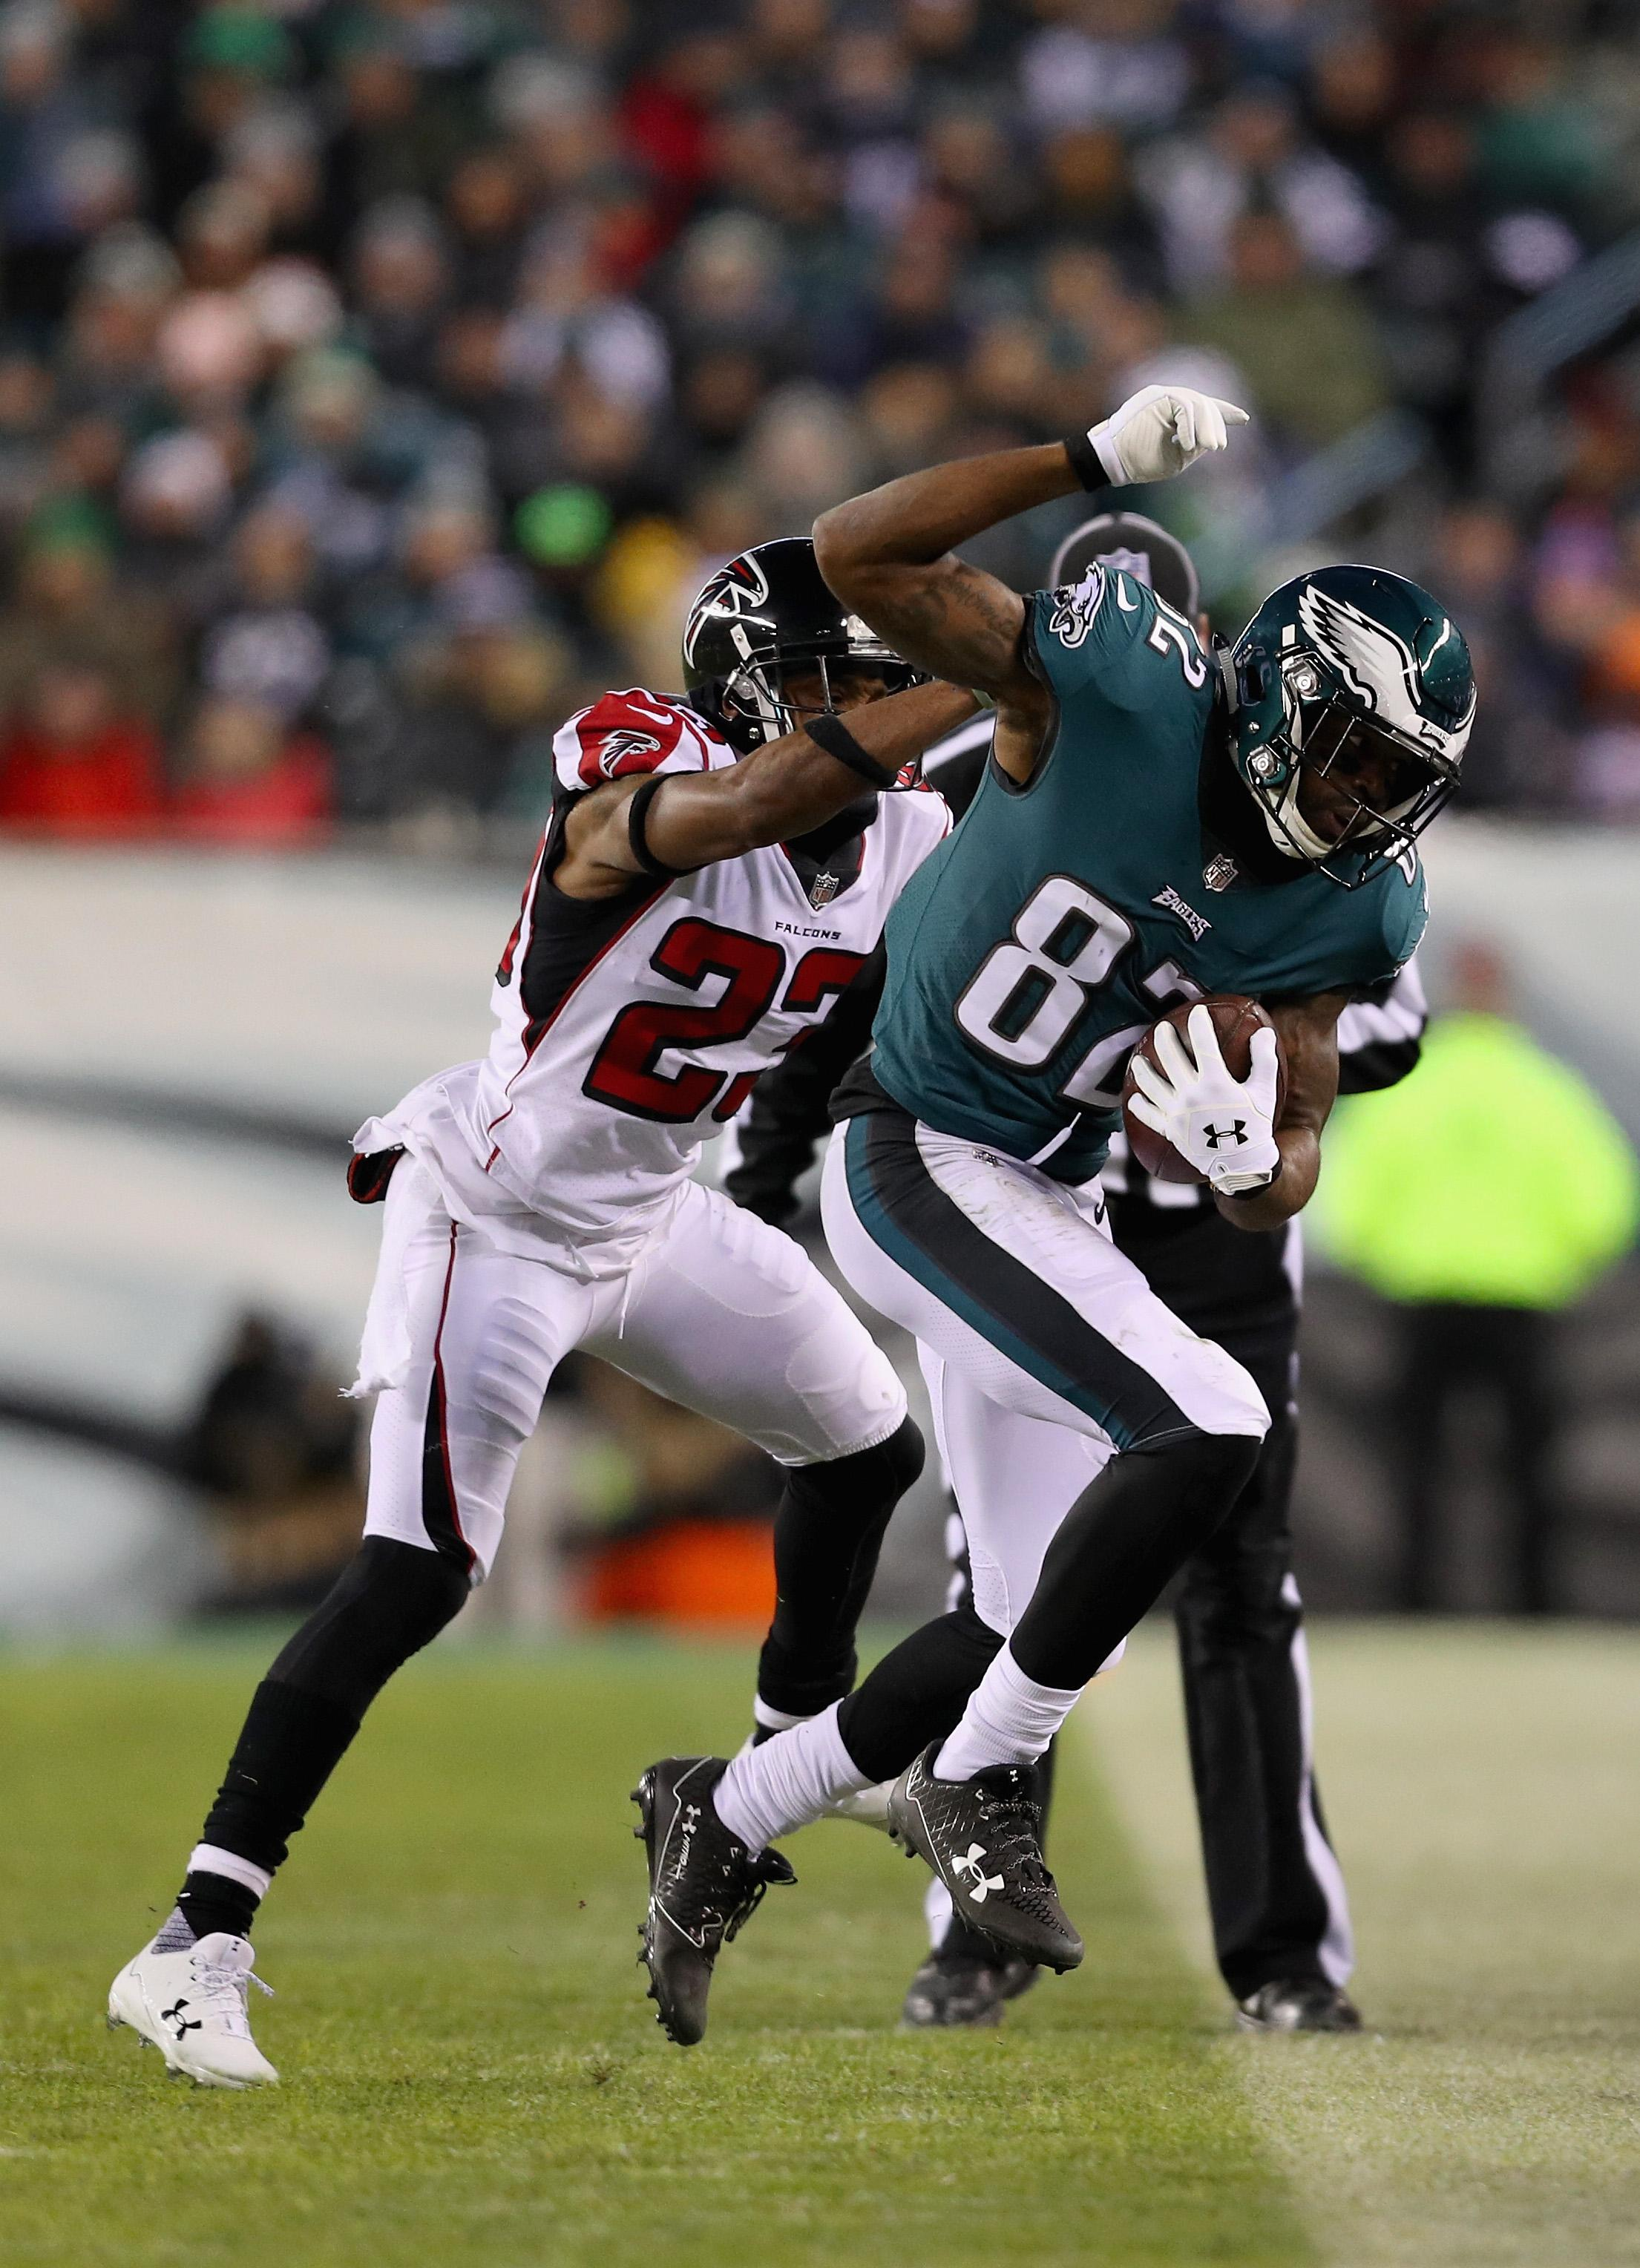 PHILADELPHIA, PA - JANUARY 13: Wide receiver Torrey Smith #82 of the Philadelphia Eagles runs the ball against cornerback Robert Alford #23 of the Atlanta Falcons during the second quarter in the NFC Divisional Playoff game at Lincoln Financial Field on January 13, 2018 in Philadelphia, Pennsylvania.  (Photo by Patrick Smith/Getty Images)